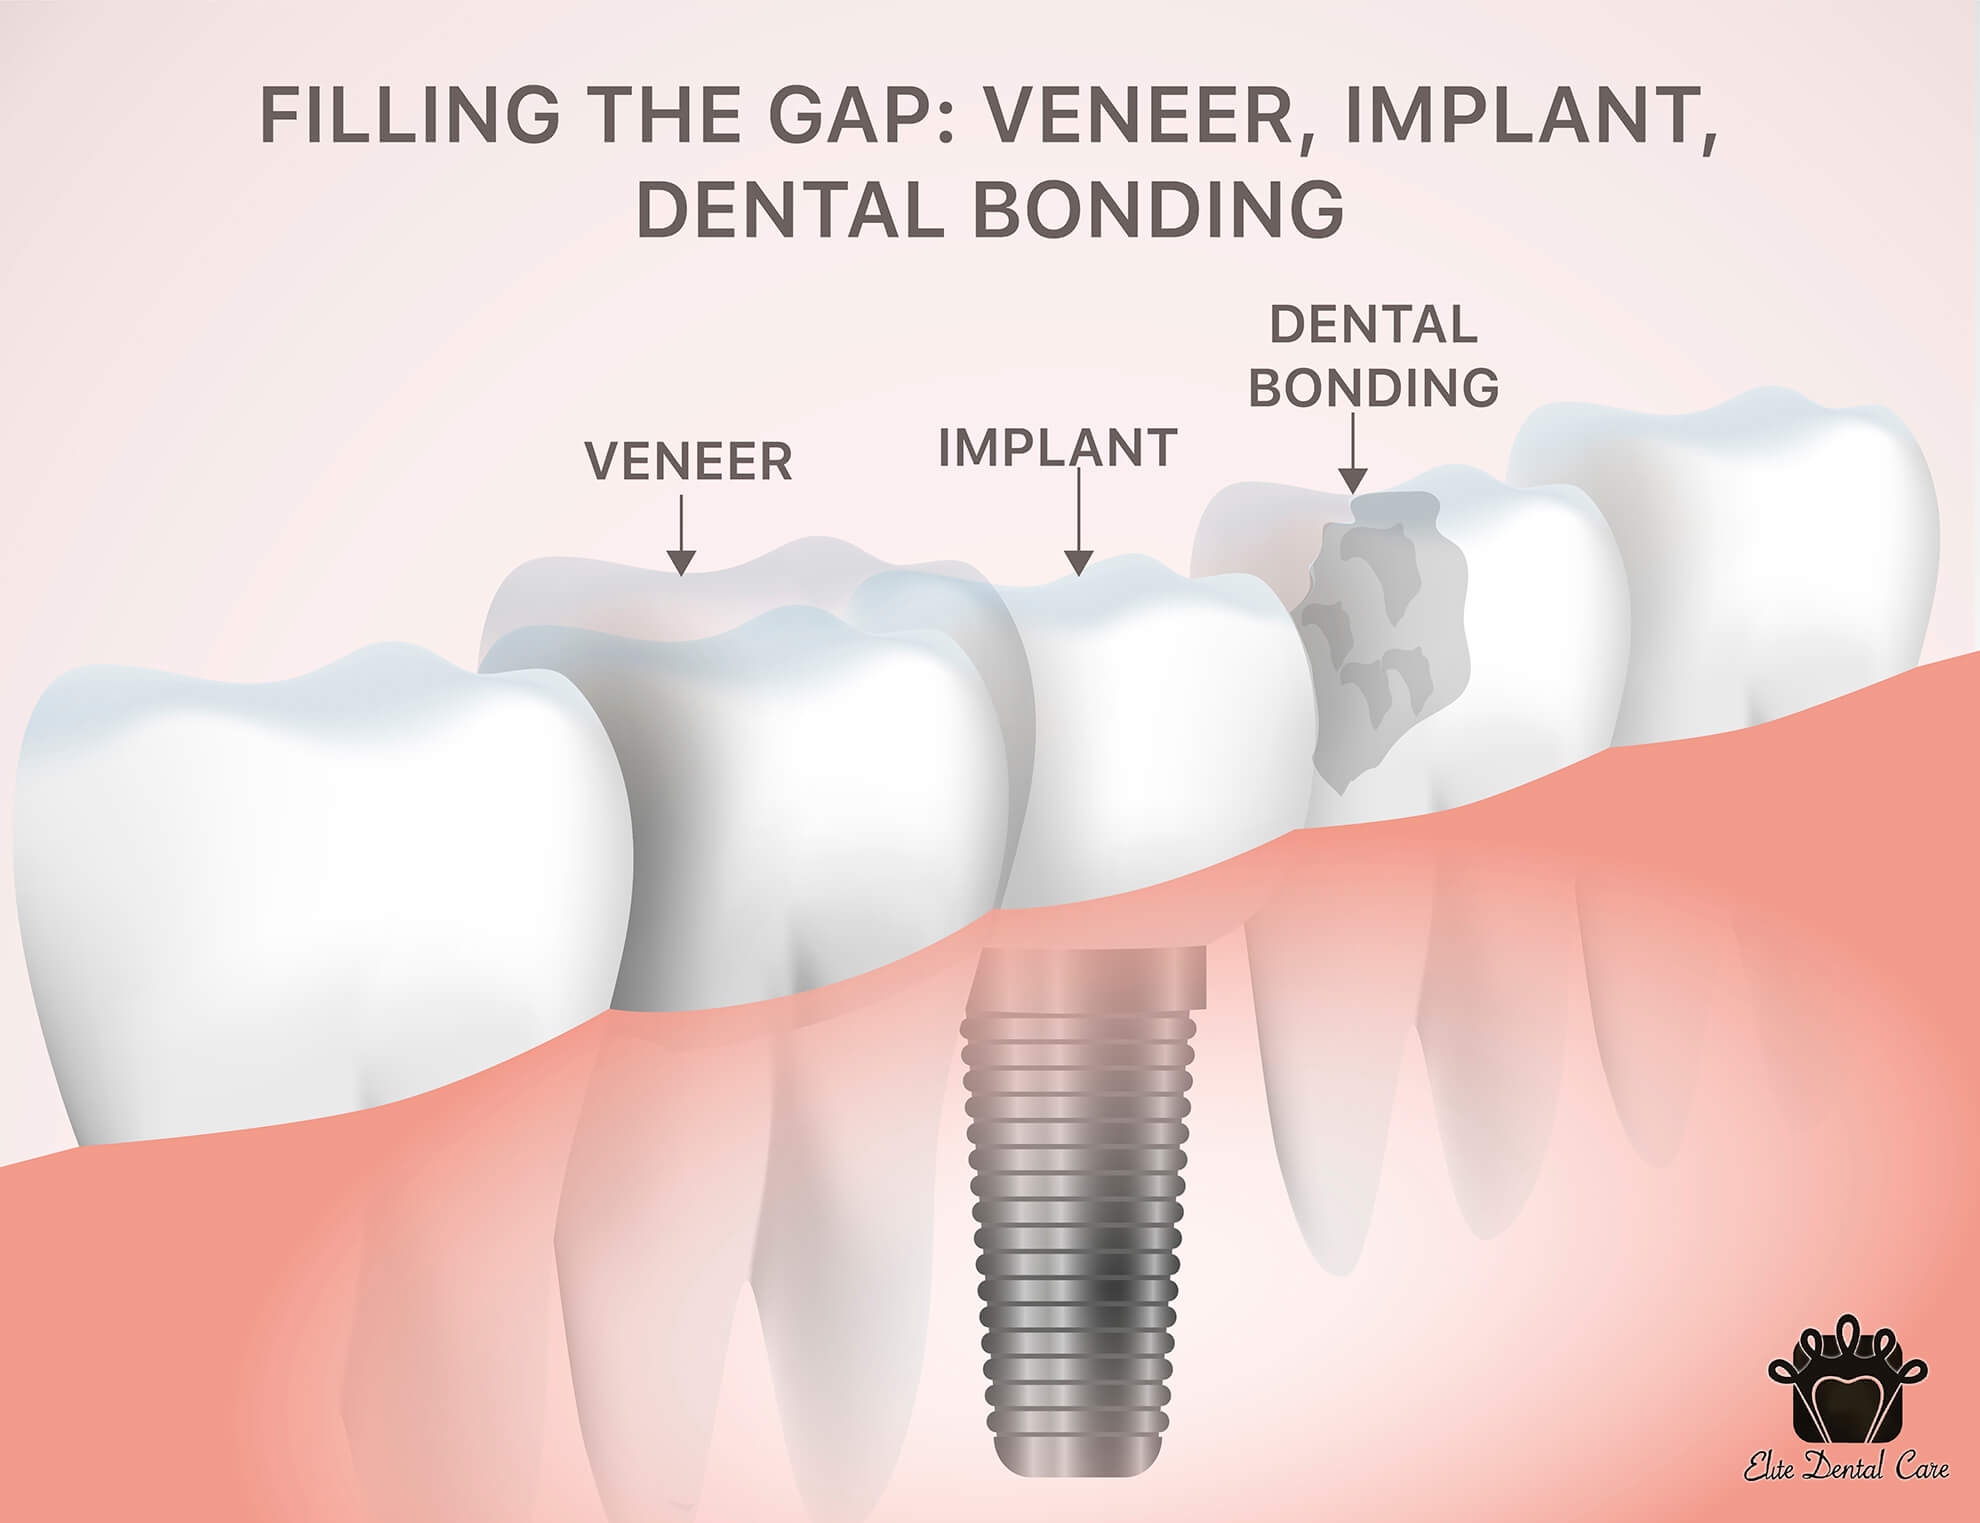 Filling the Gaps: Veneers, Implants, Dental Bonding